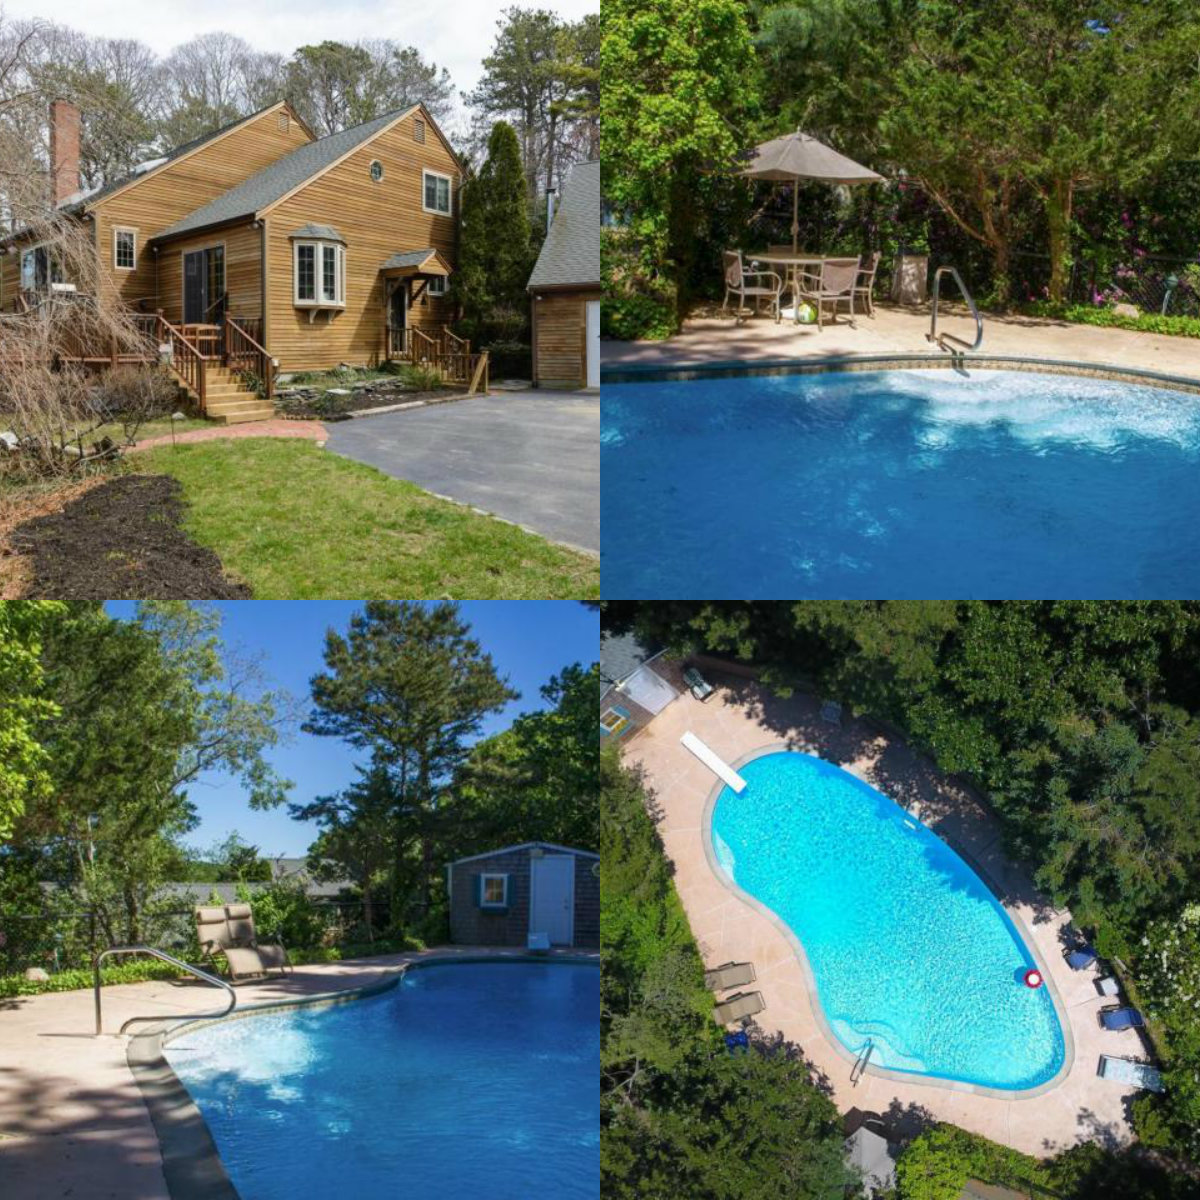 Images of pool at 118 Driftwood Lane in South Yarmouth Cape Cod MA